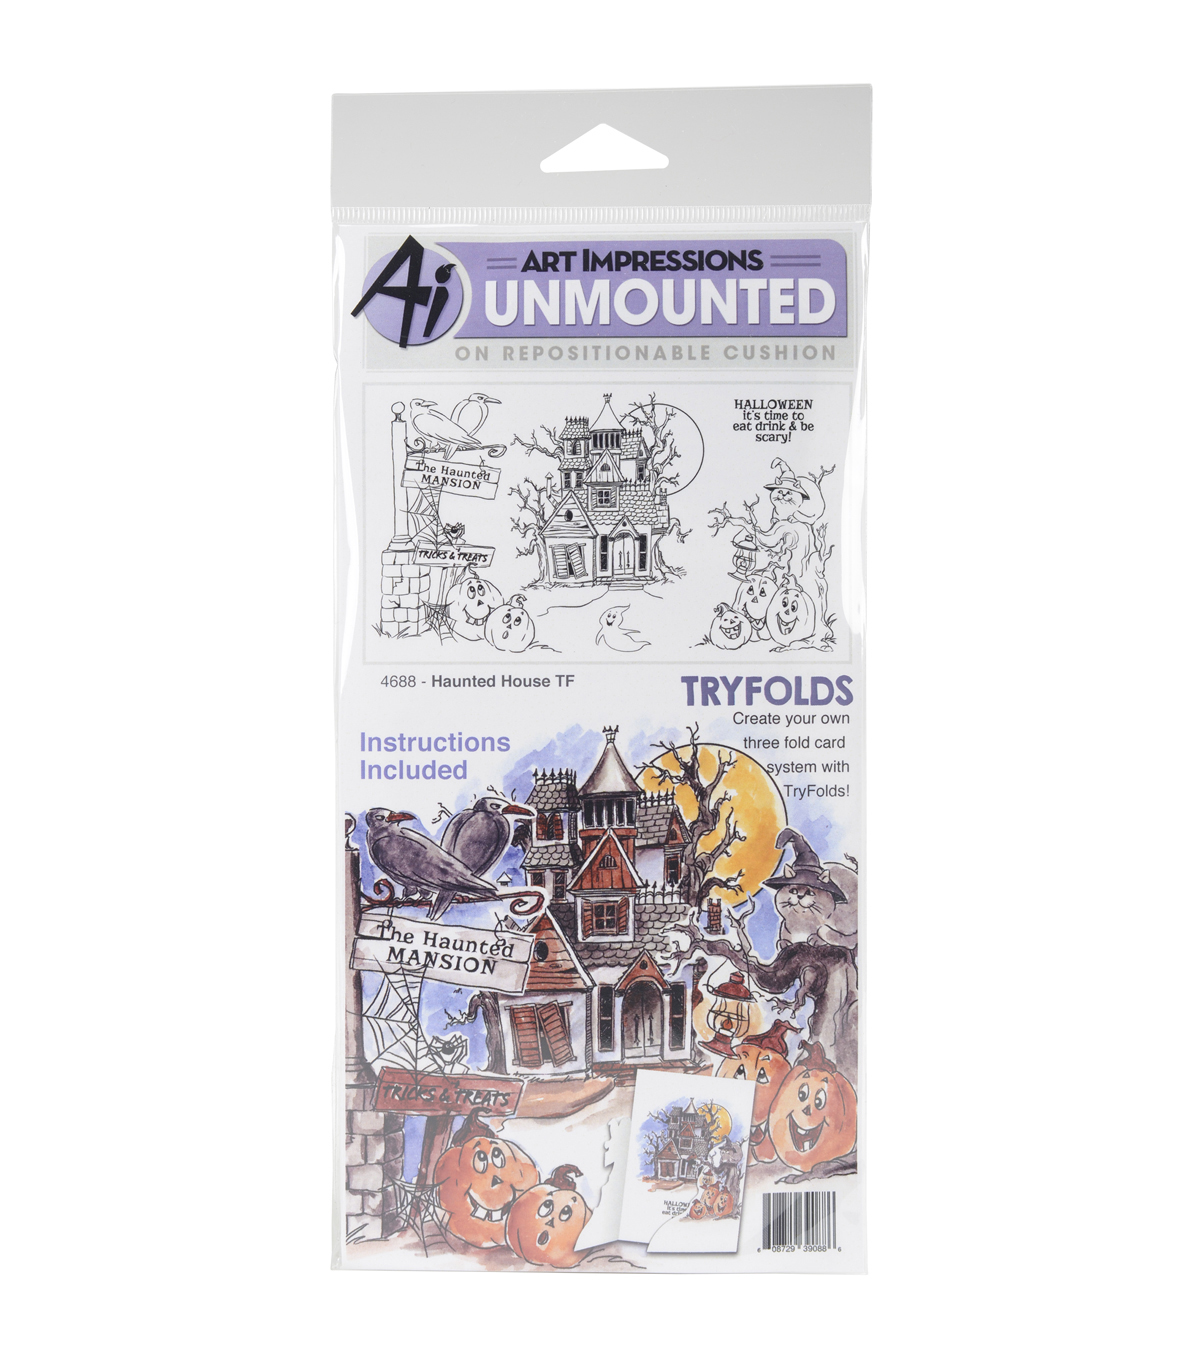 Art Impressions Tryfolds Unmounted Cling Rubber Stamps-Haunted House